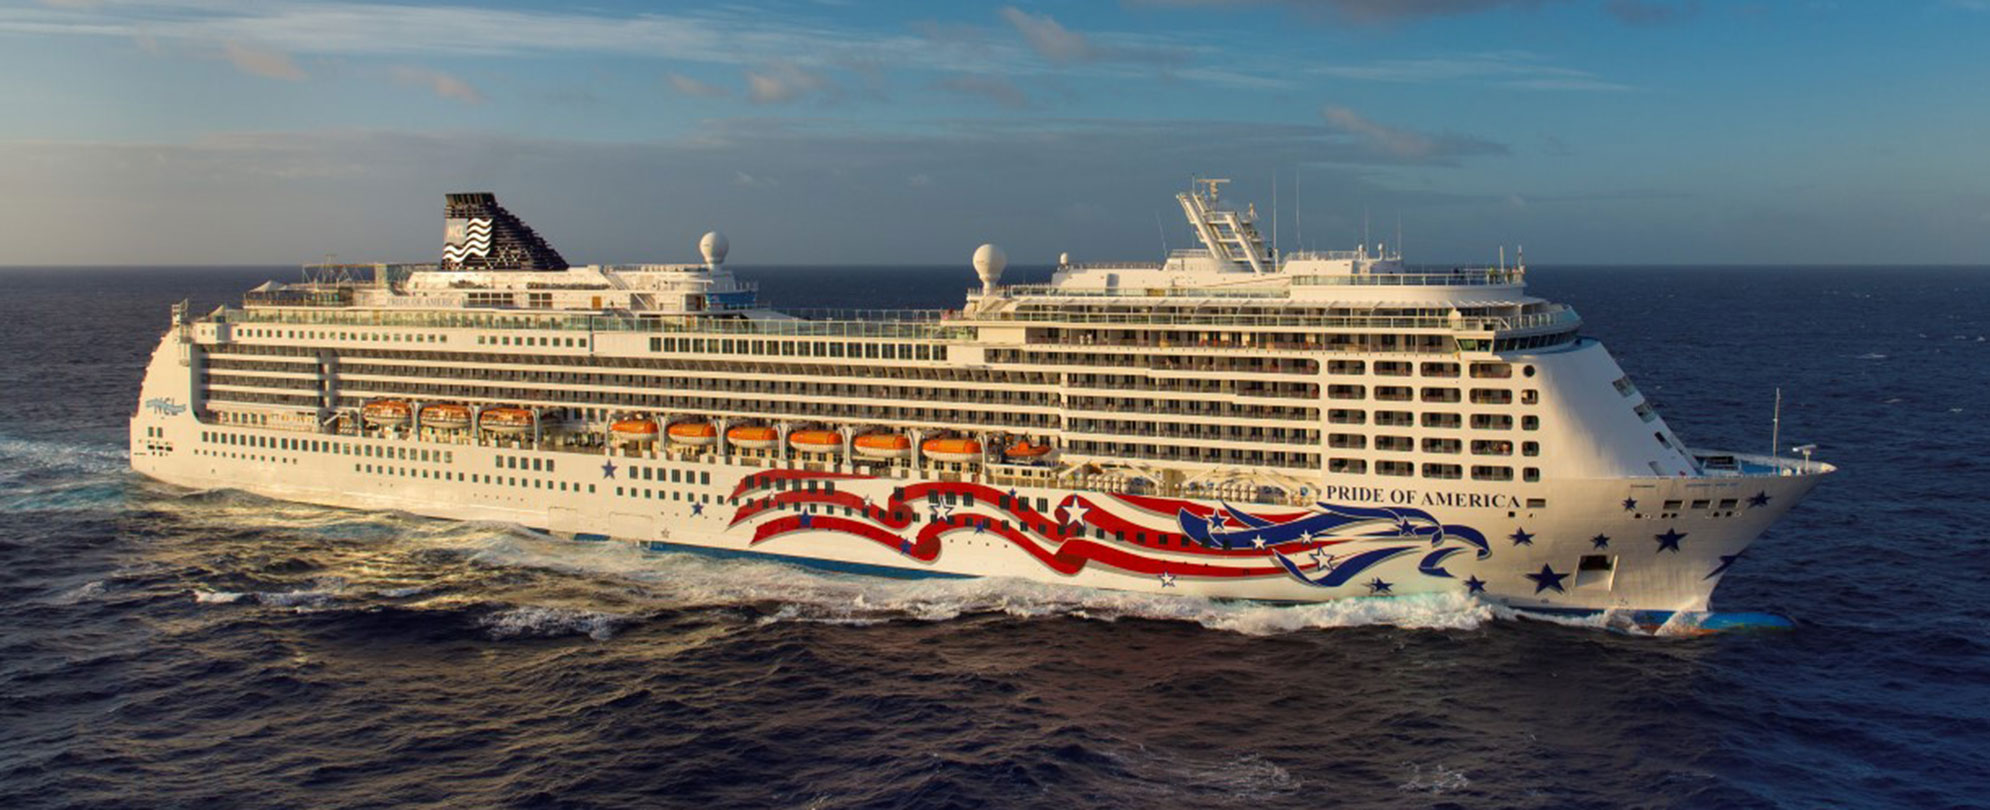 The Pride of America cruise ship sailing.